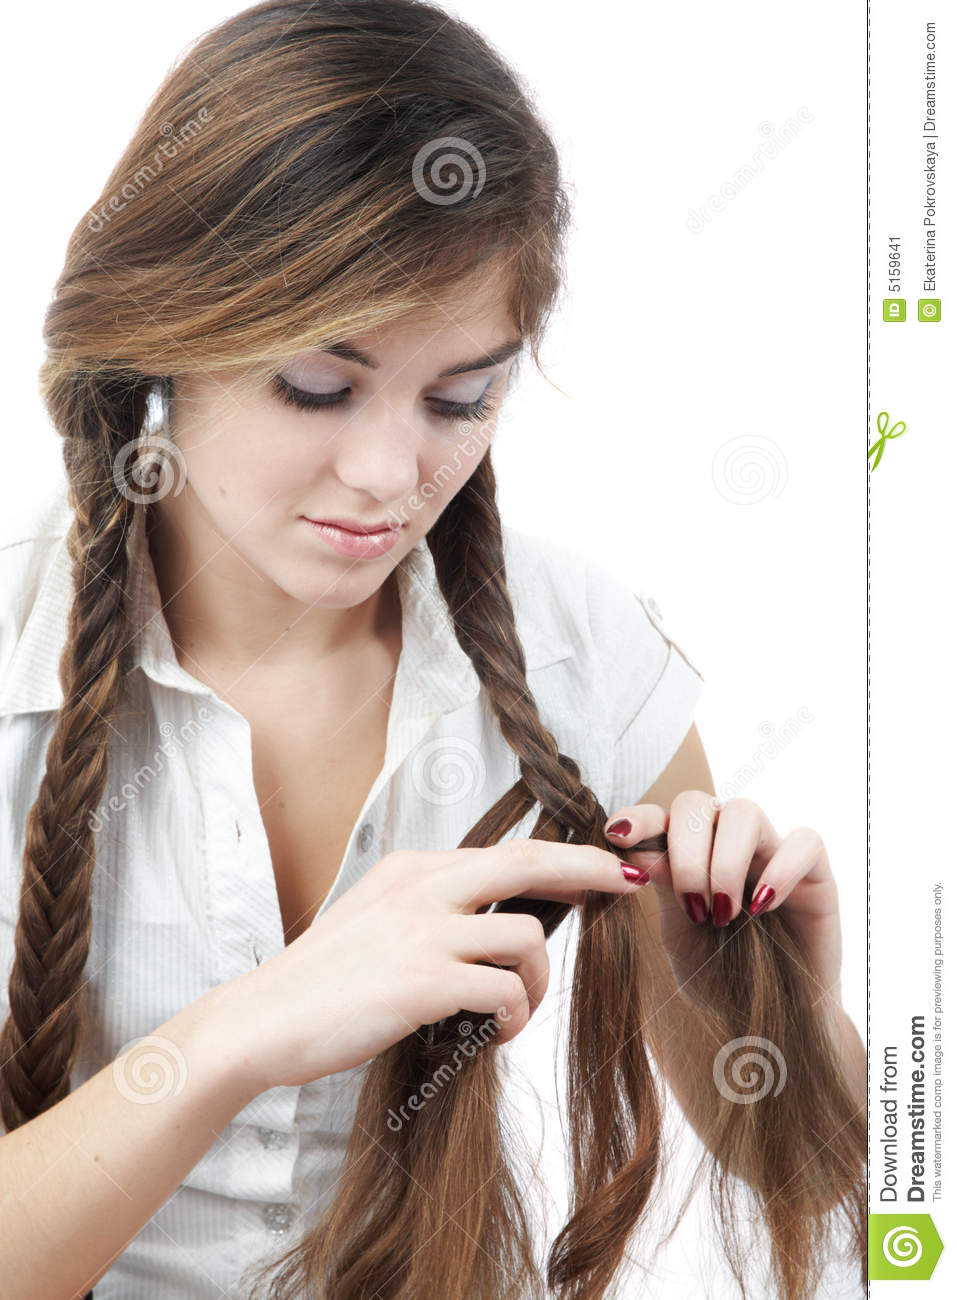 Braiding Hair Stock Image Image 5159641